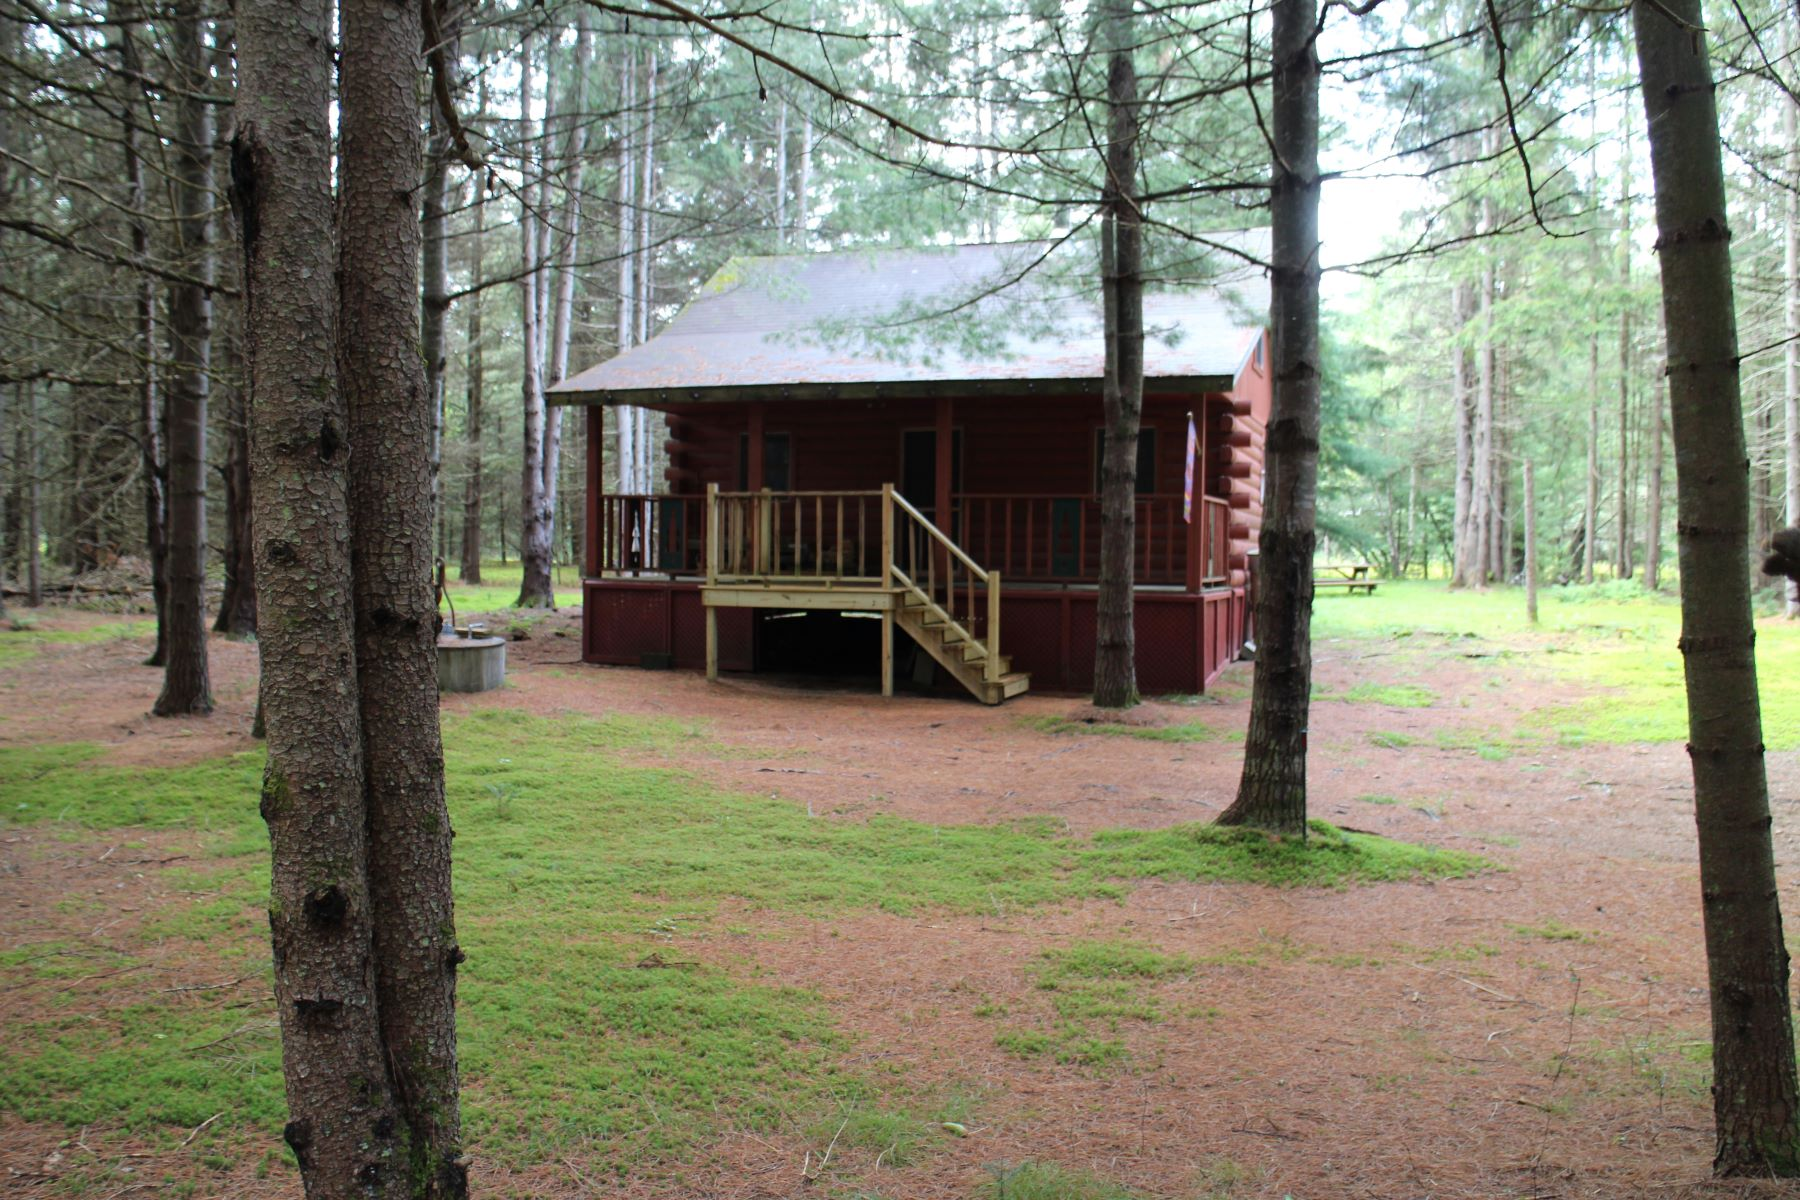 Single Family Home for Sale at Log camp in Snowbird Lake area 12486 Meekerville Rd. North Forestport, New York 13338 United States